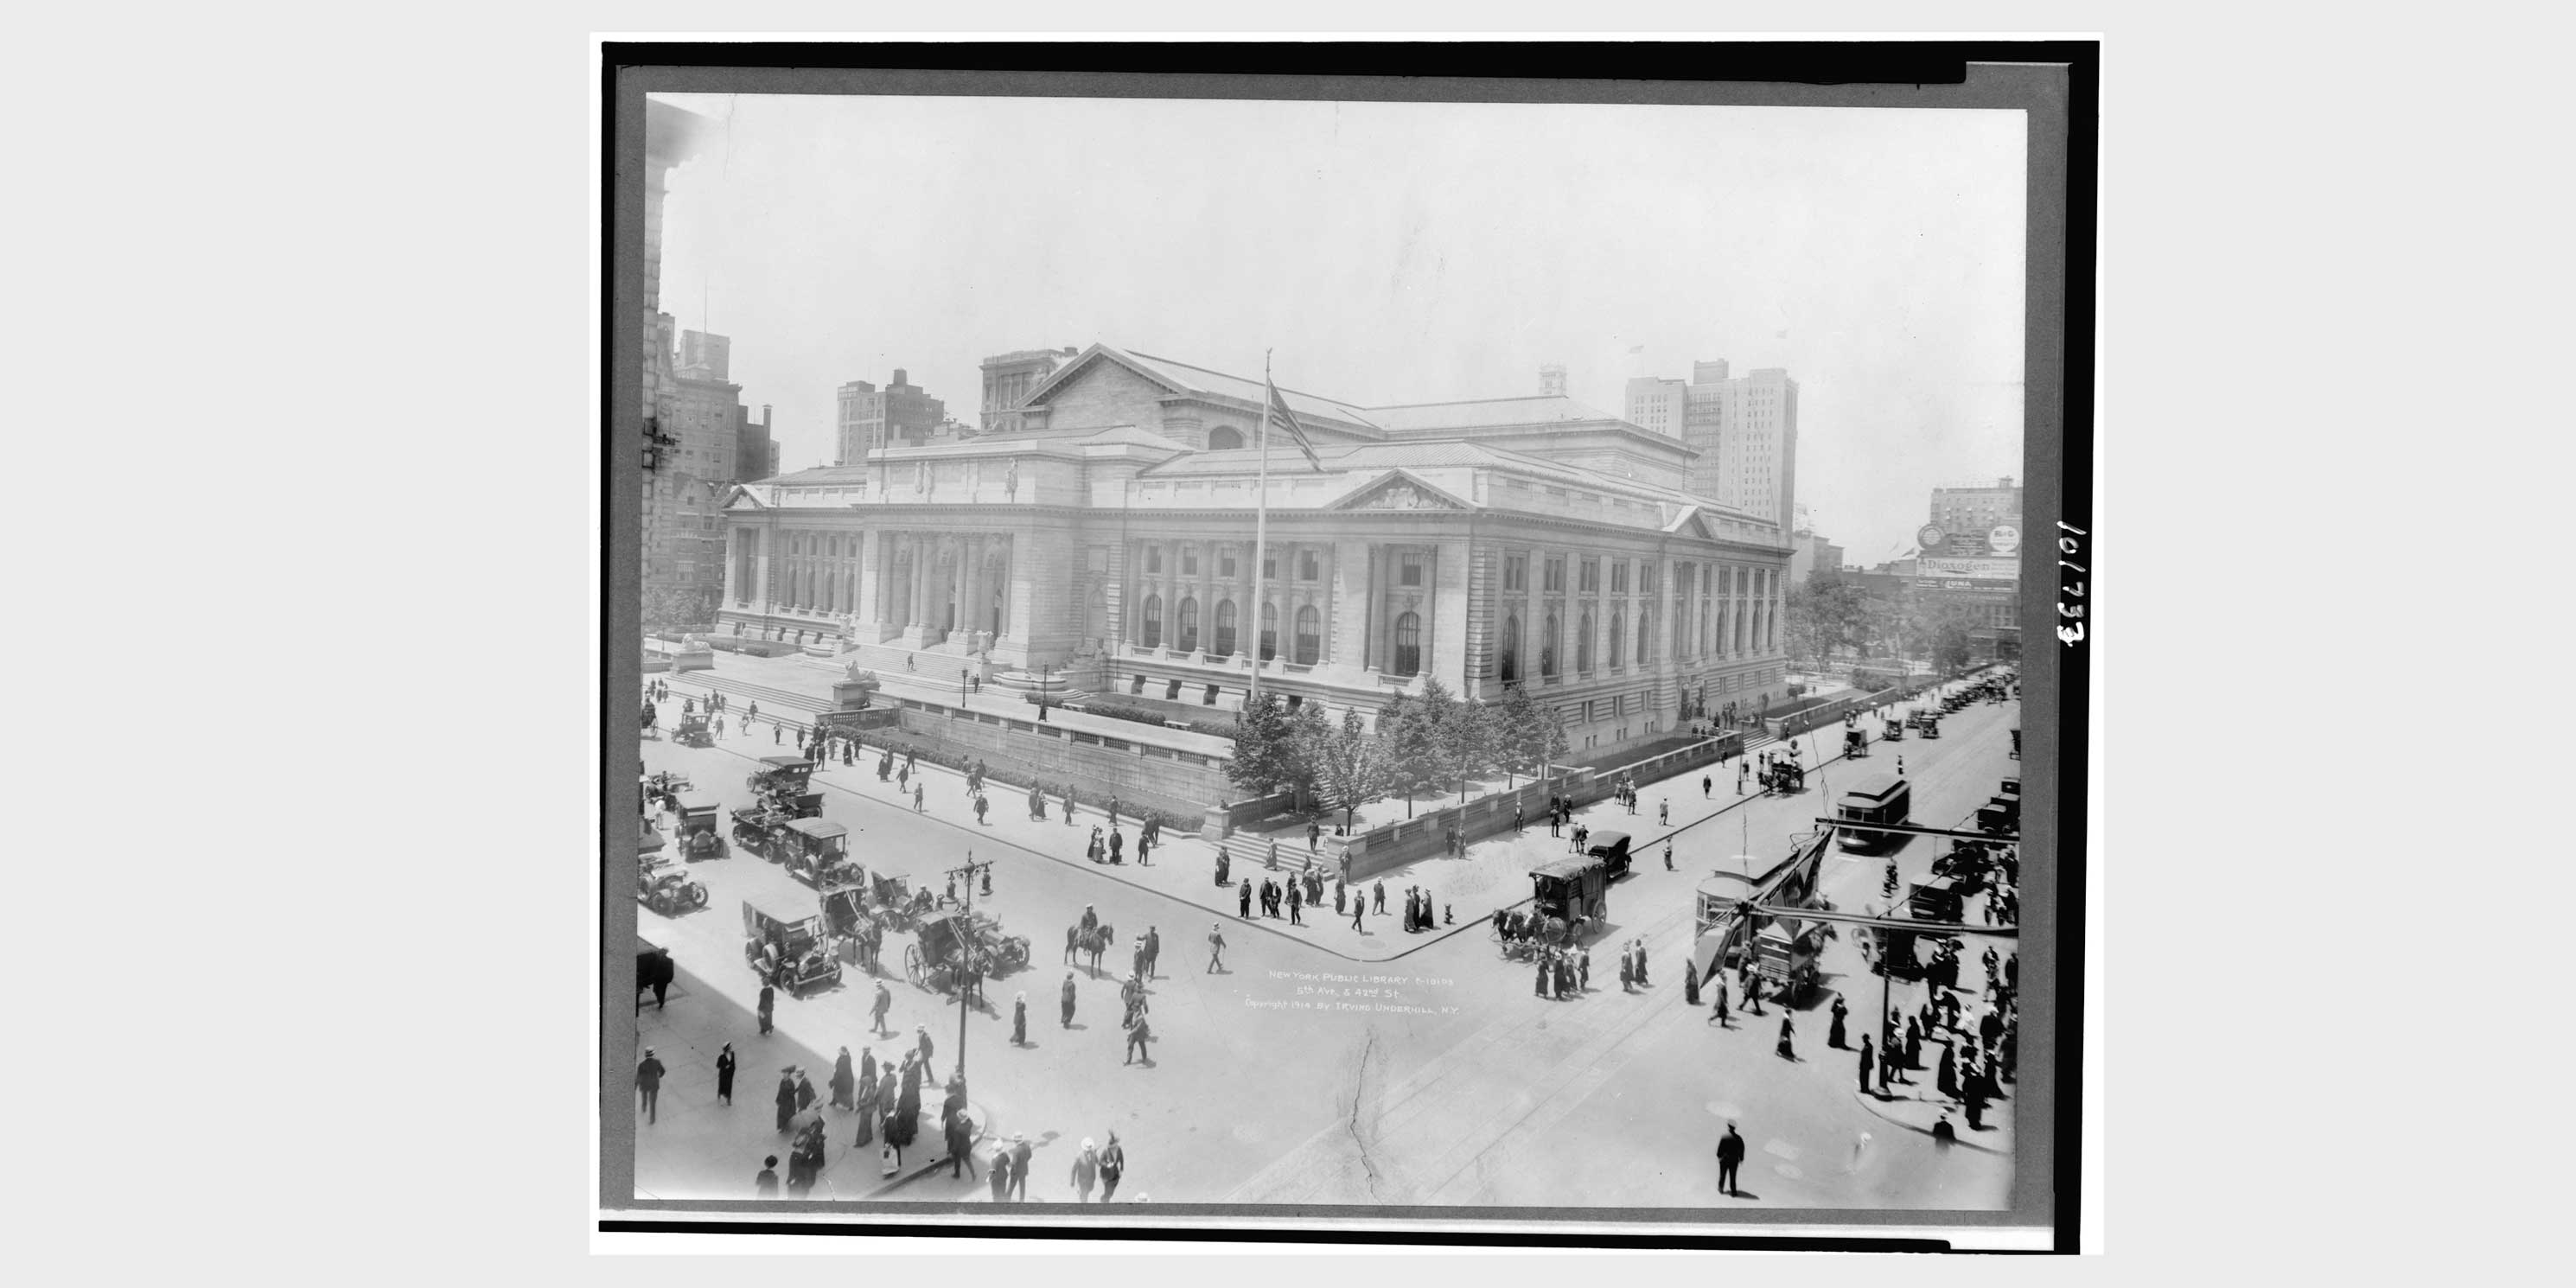 exterior, Main Branch of the New York Public Library, 1914